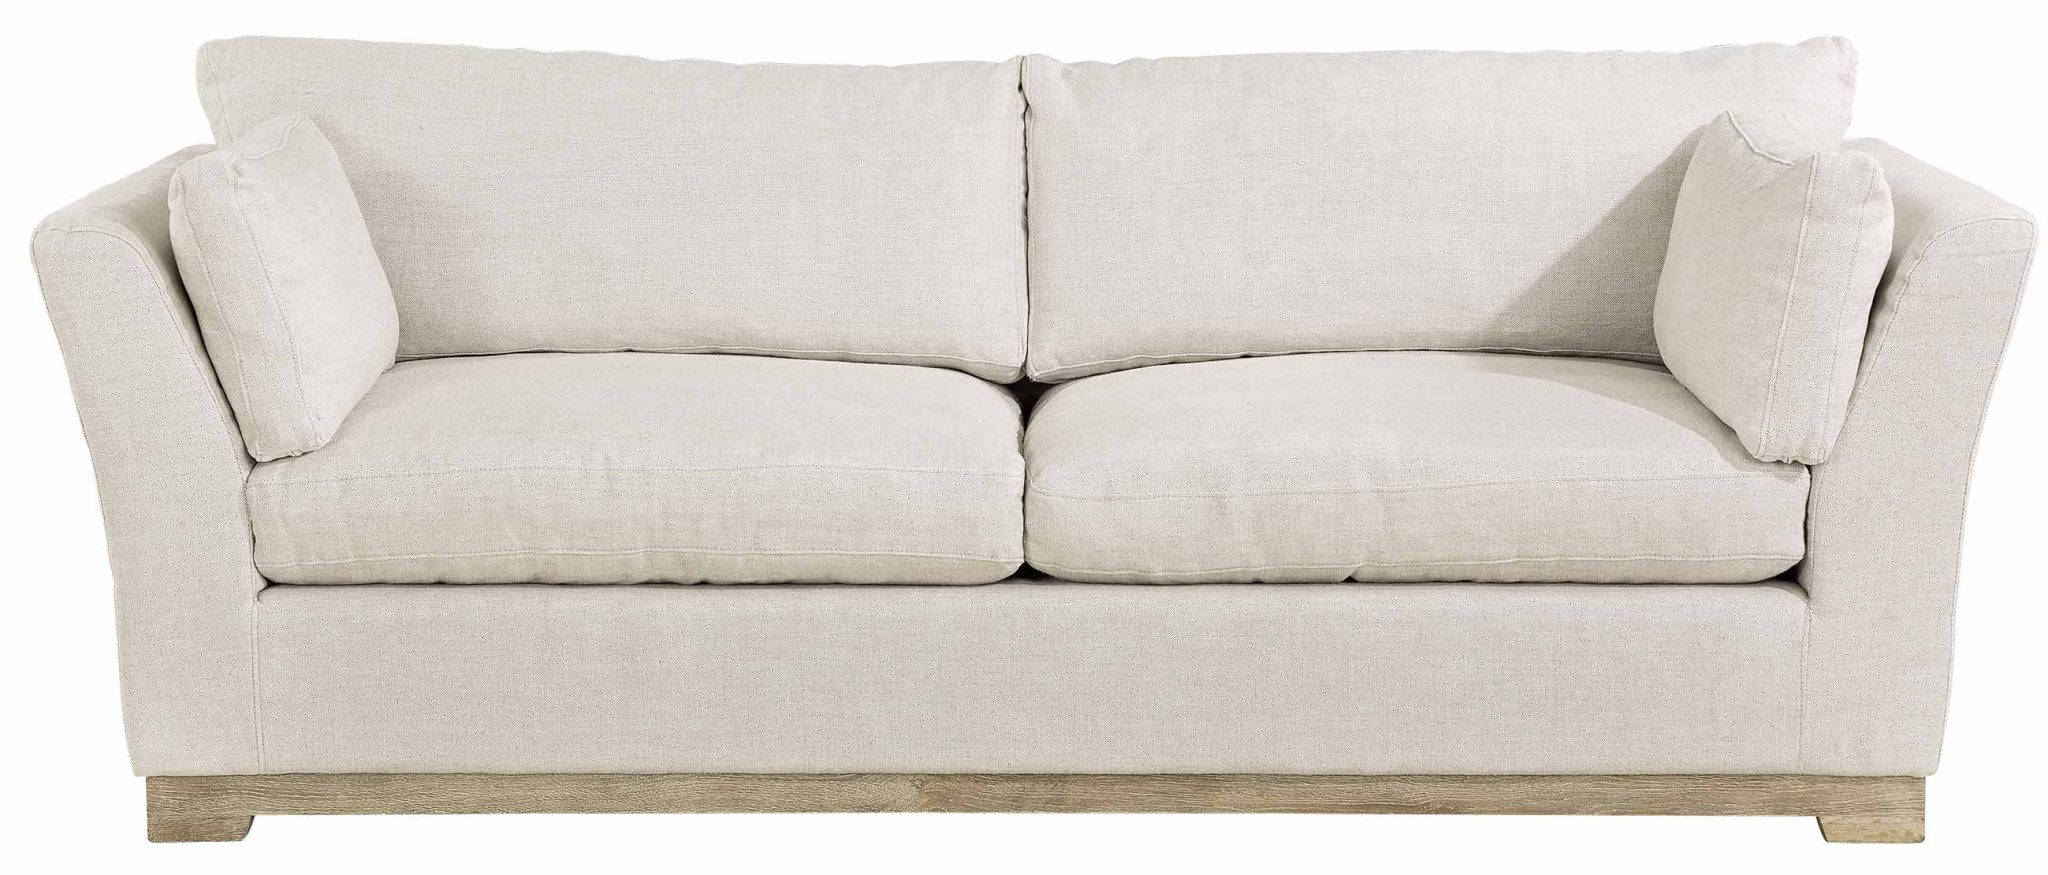 Soho 3 Seater Sofa – Linensand | Artwood Within Cromwell Modular Sectional Sofas (View 3 of 15)